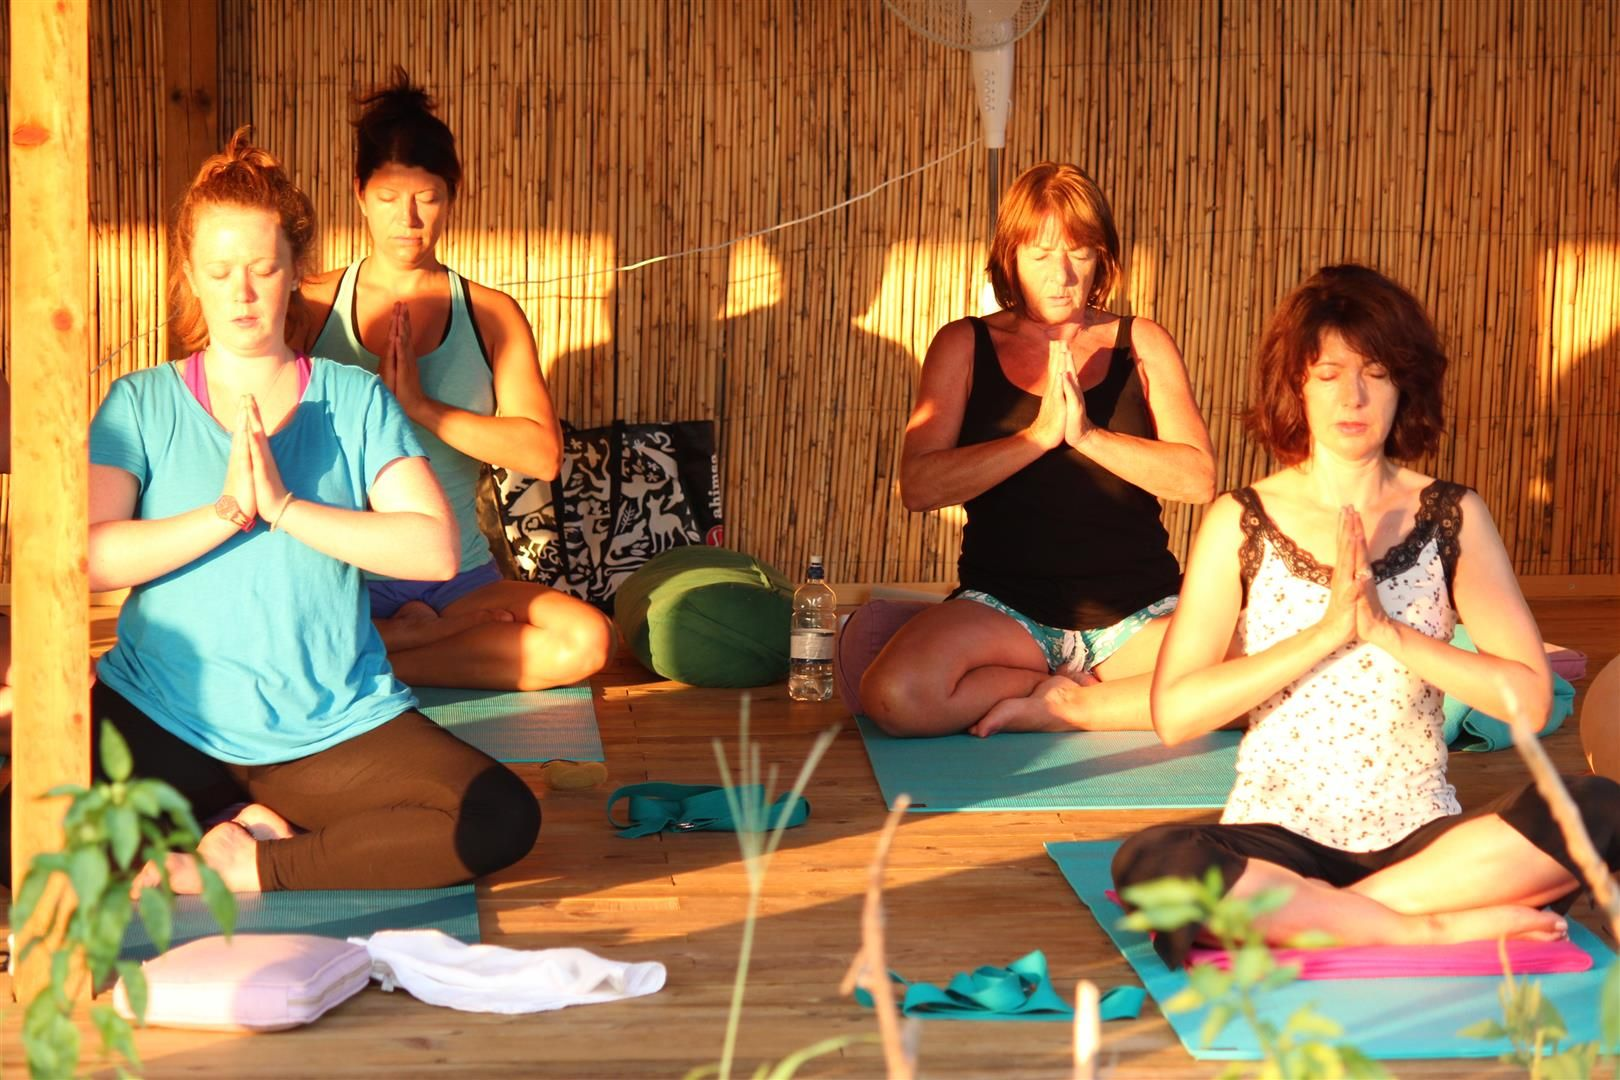 We will have twice daily yoga classes in one of the two amazing yoga spaces (one indoor and one outdoor), both overlooking the sea and lush vegetation. These are great spots to watch sunrises and sunsets during the practice.